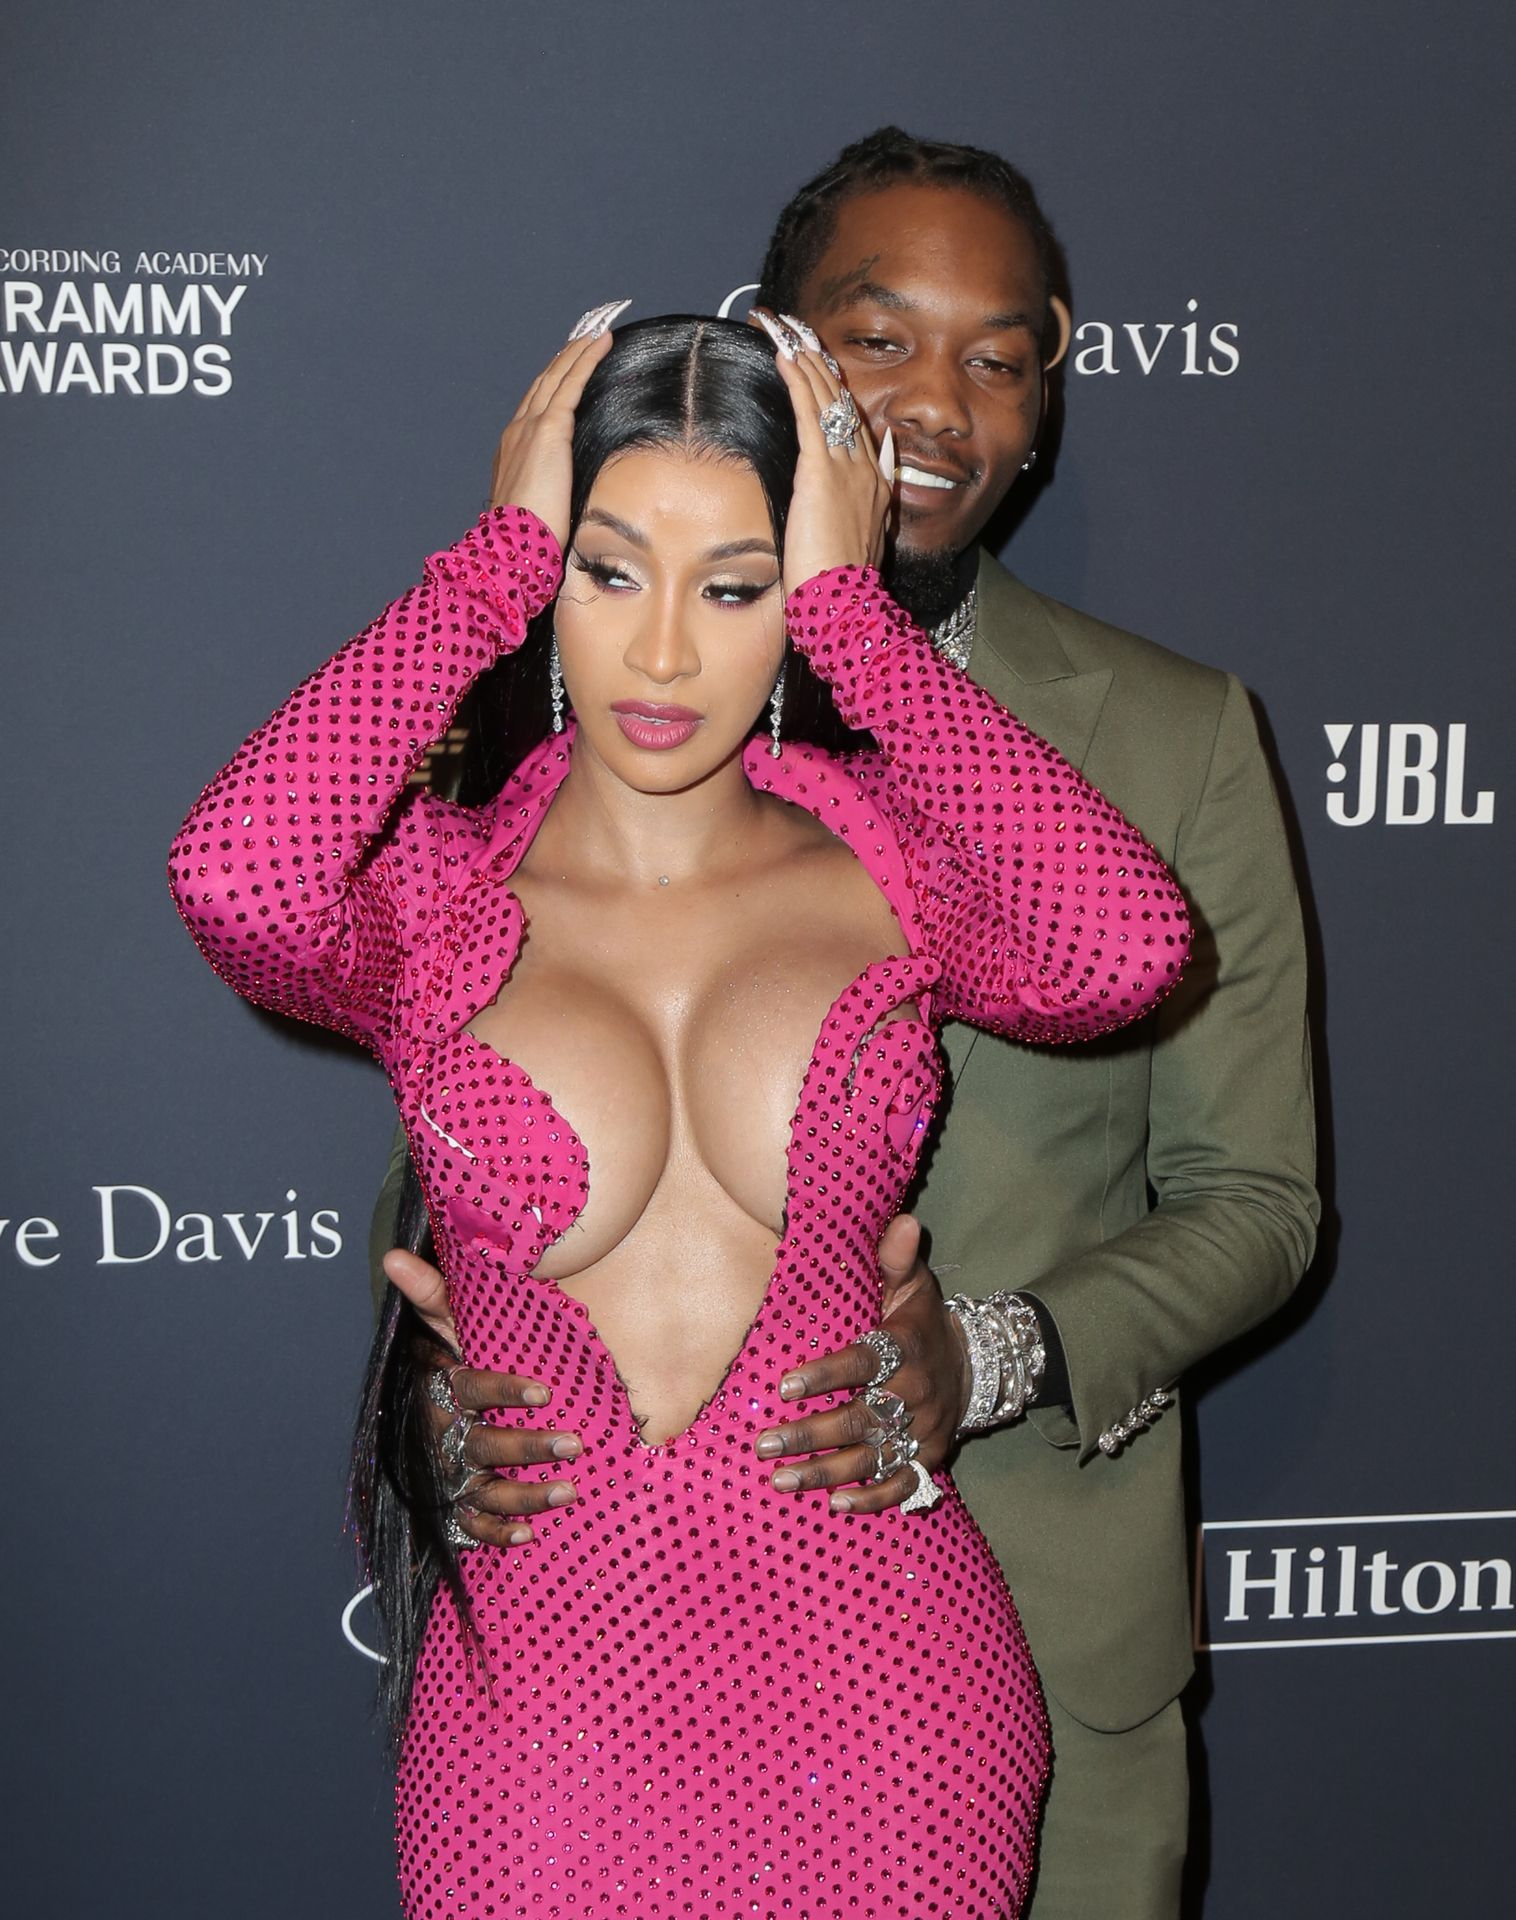 Offset Covers Cardi B's Boobs To Avoid Wardrobe Malfunction At Clive Davis Pre Grammy Party 0074